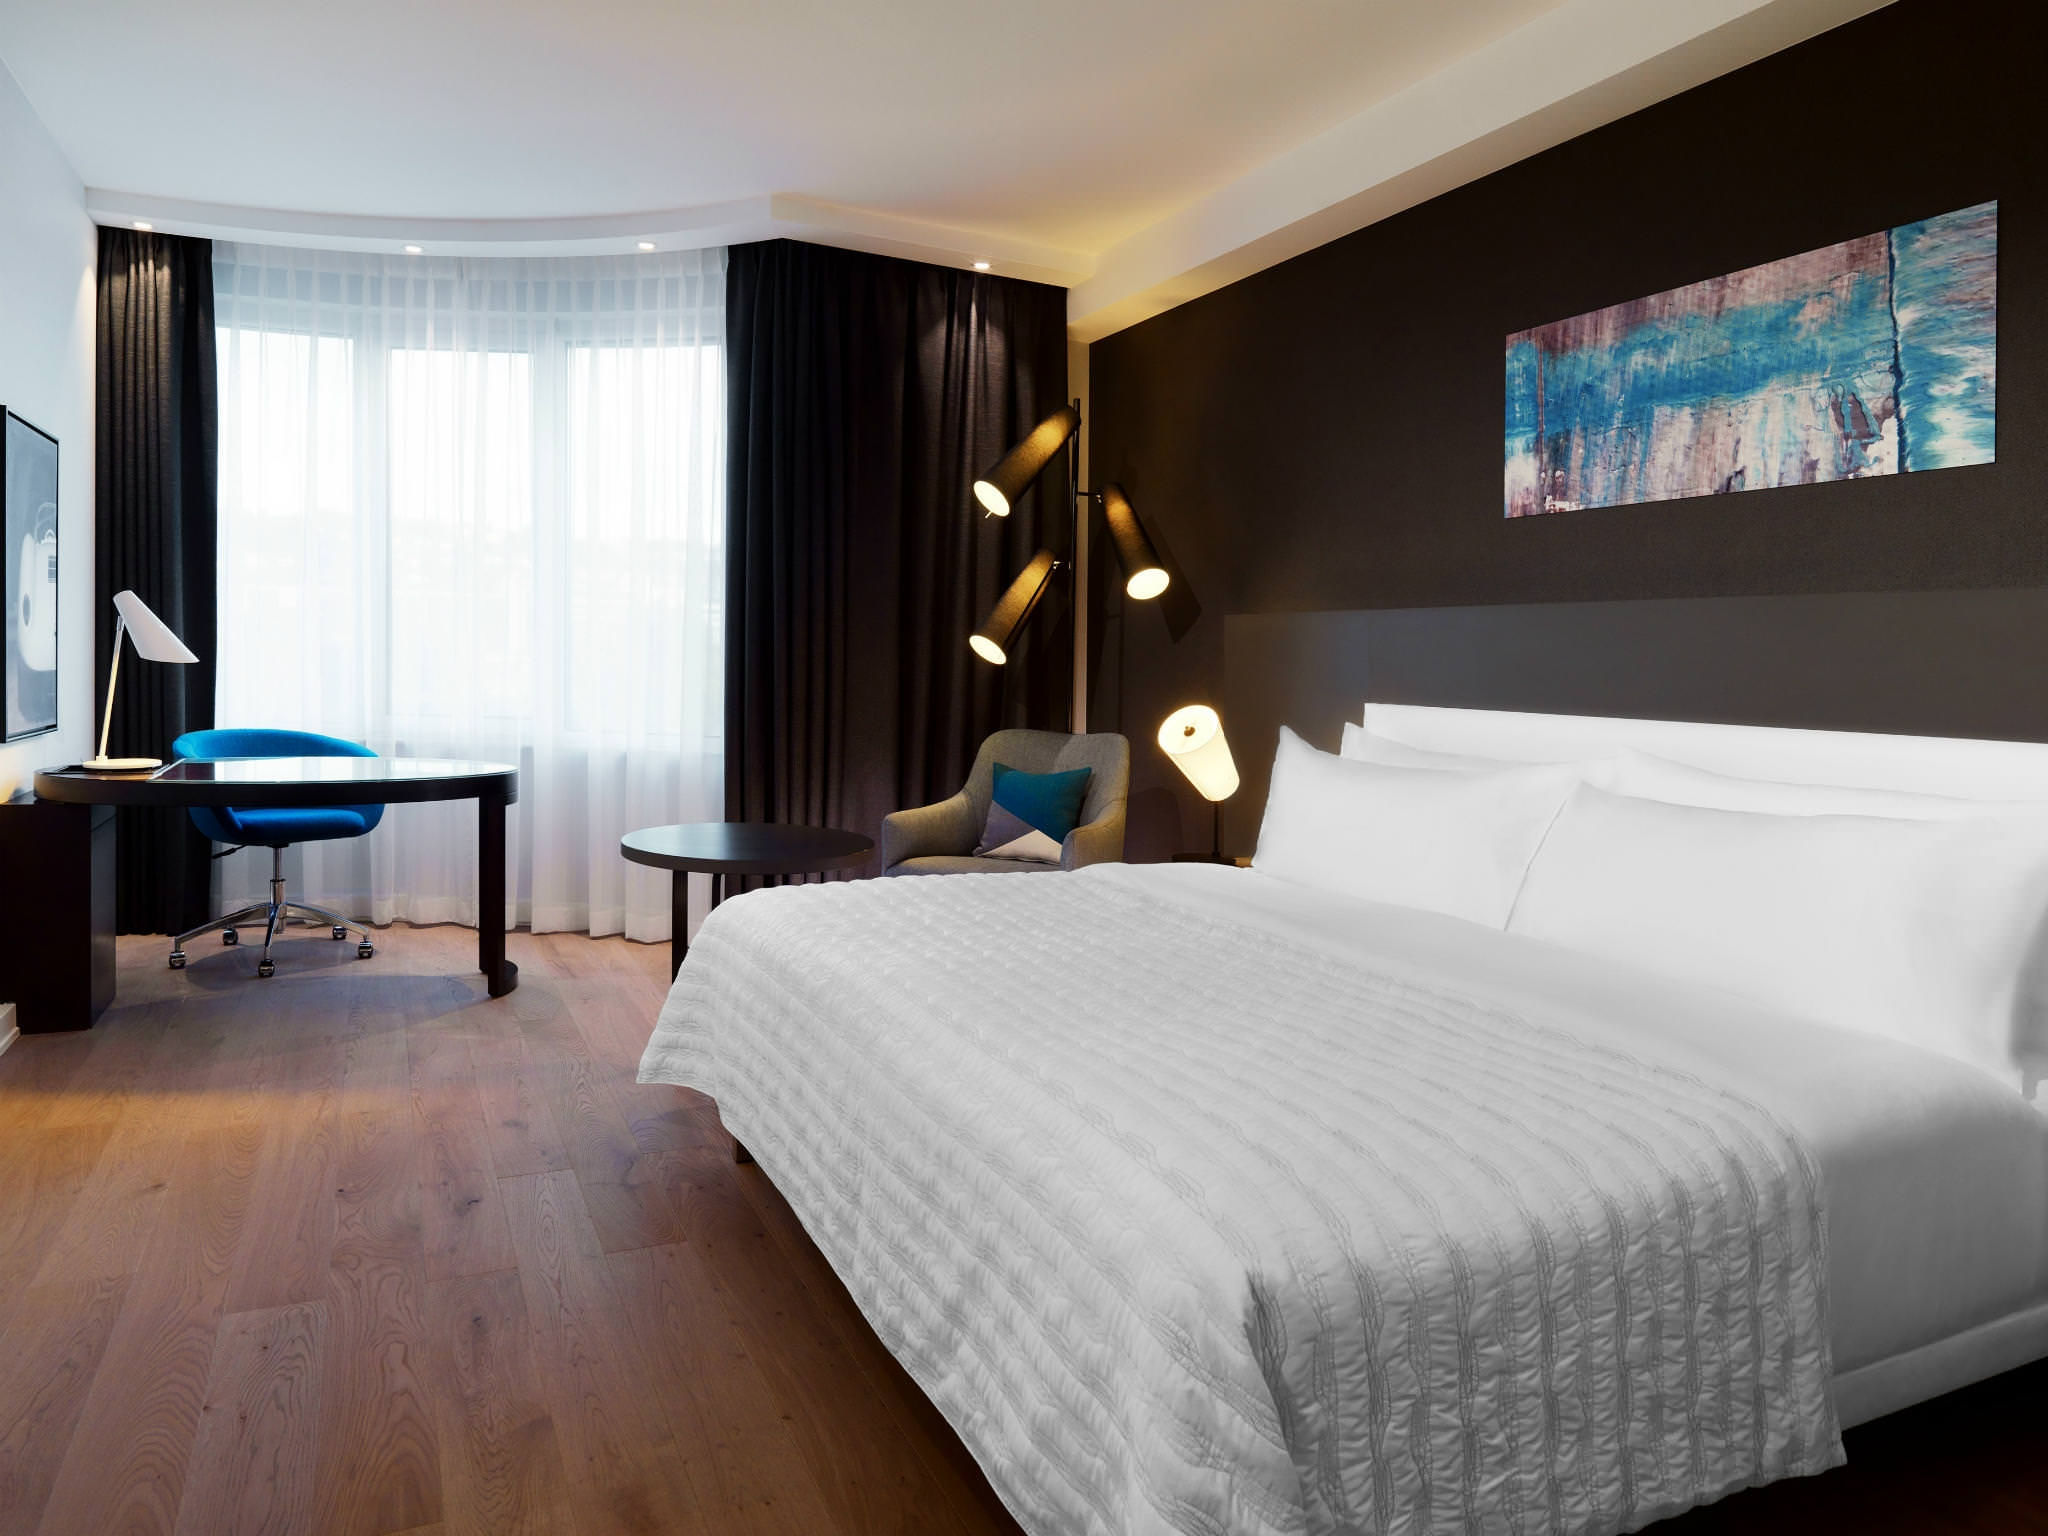 Accommodation Stuttgart: Executive Chic Rooms Le Méridien Stuttgart